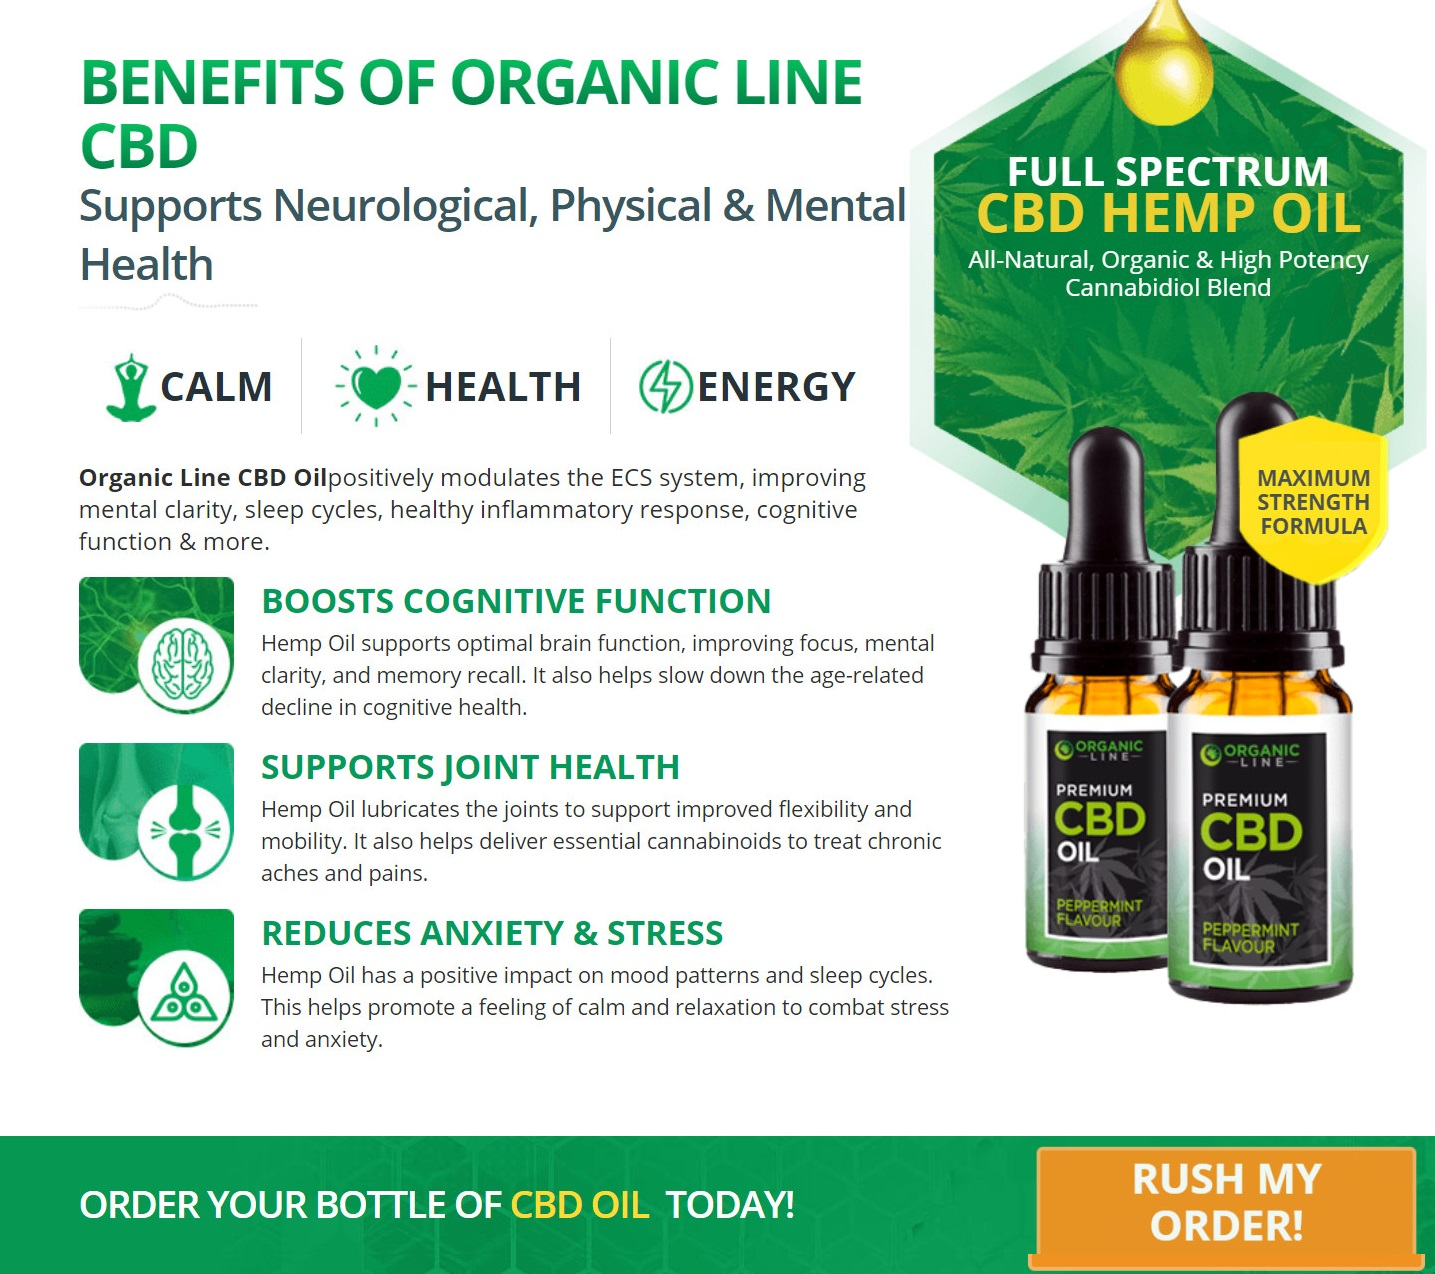 Organic Line CBD Oil benefits